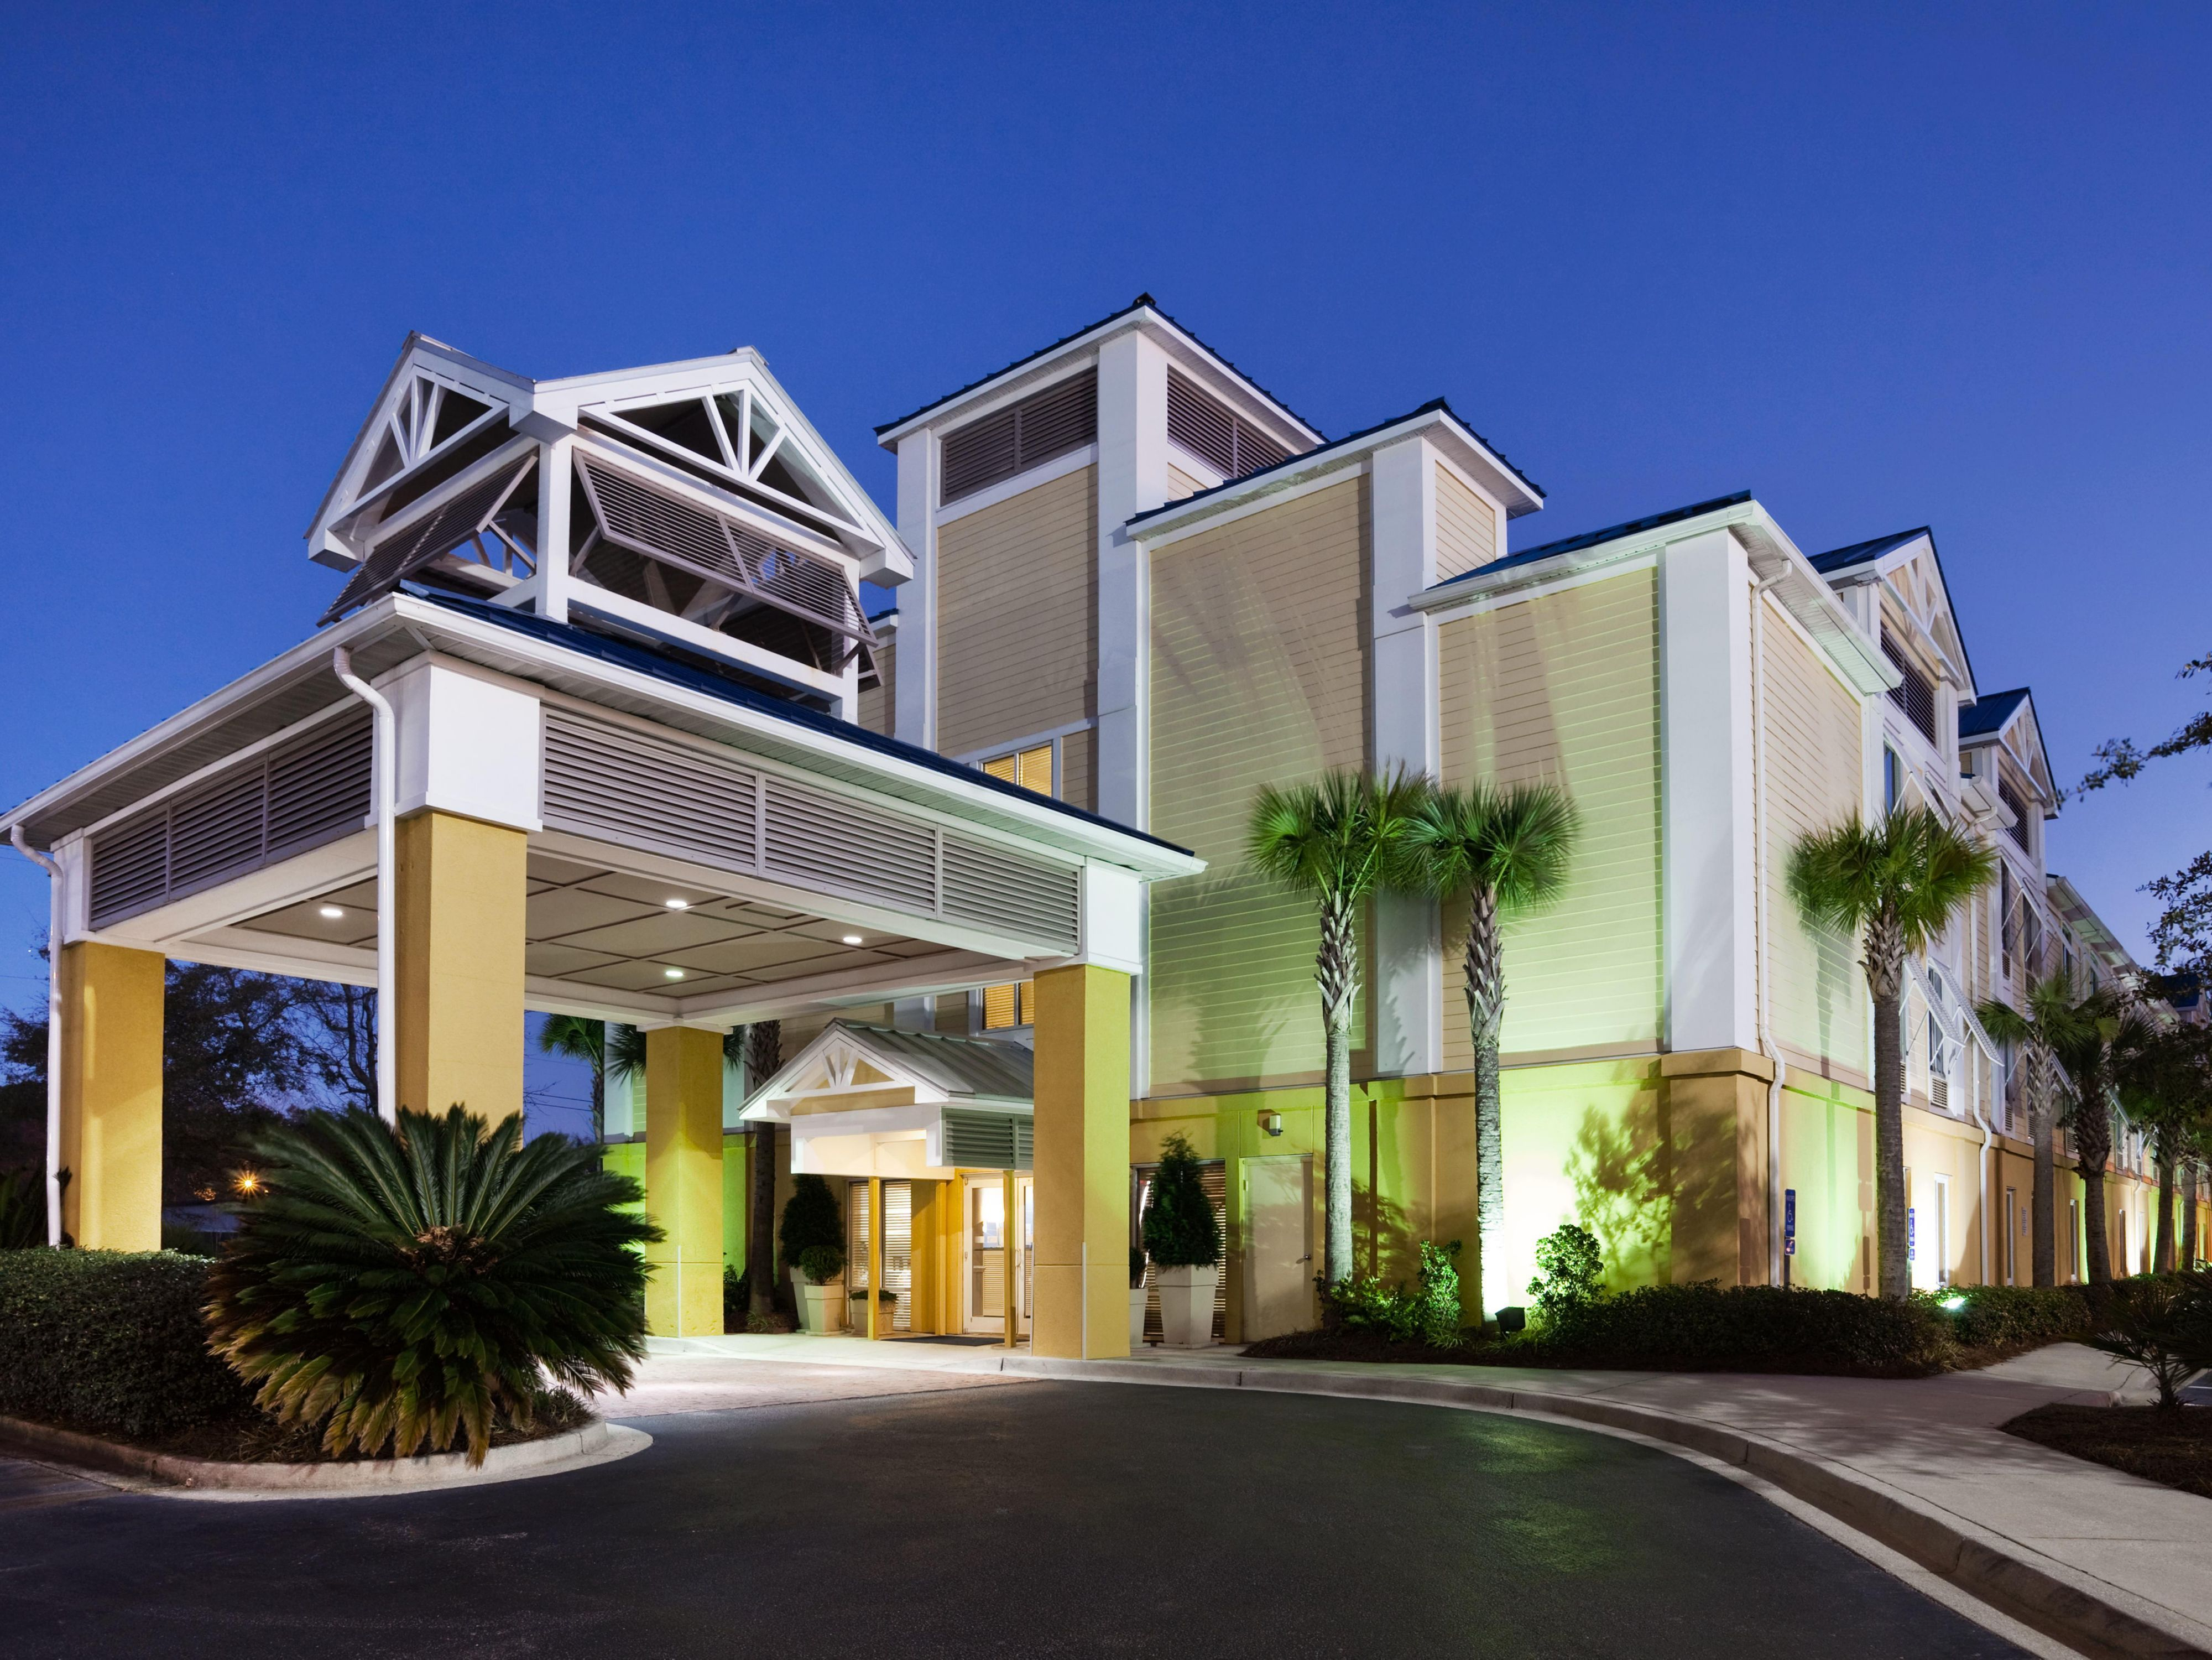 Official Site View Pictures Of Holiday Inn Express Charleston Us Hwy 17 See Hotel Photos Learn About Amenities And Book With Best Price Guarantee